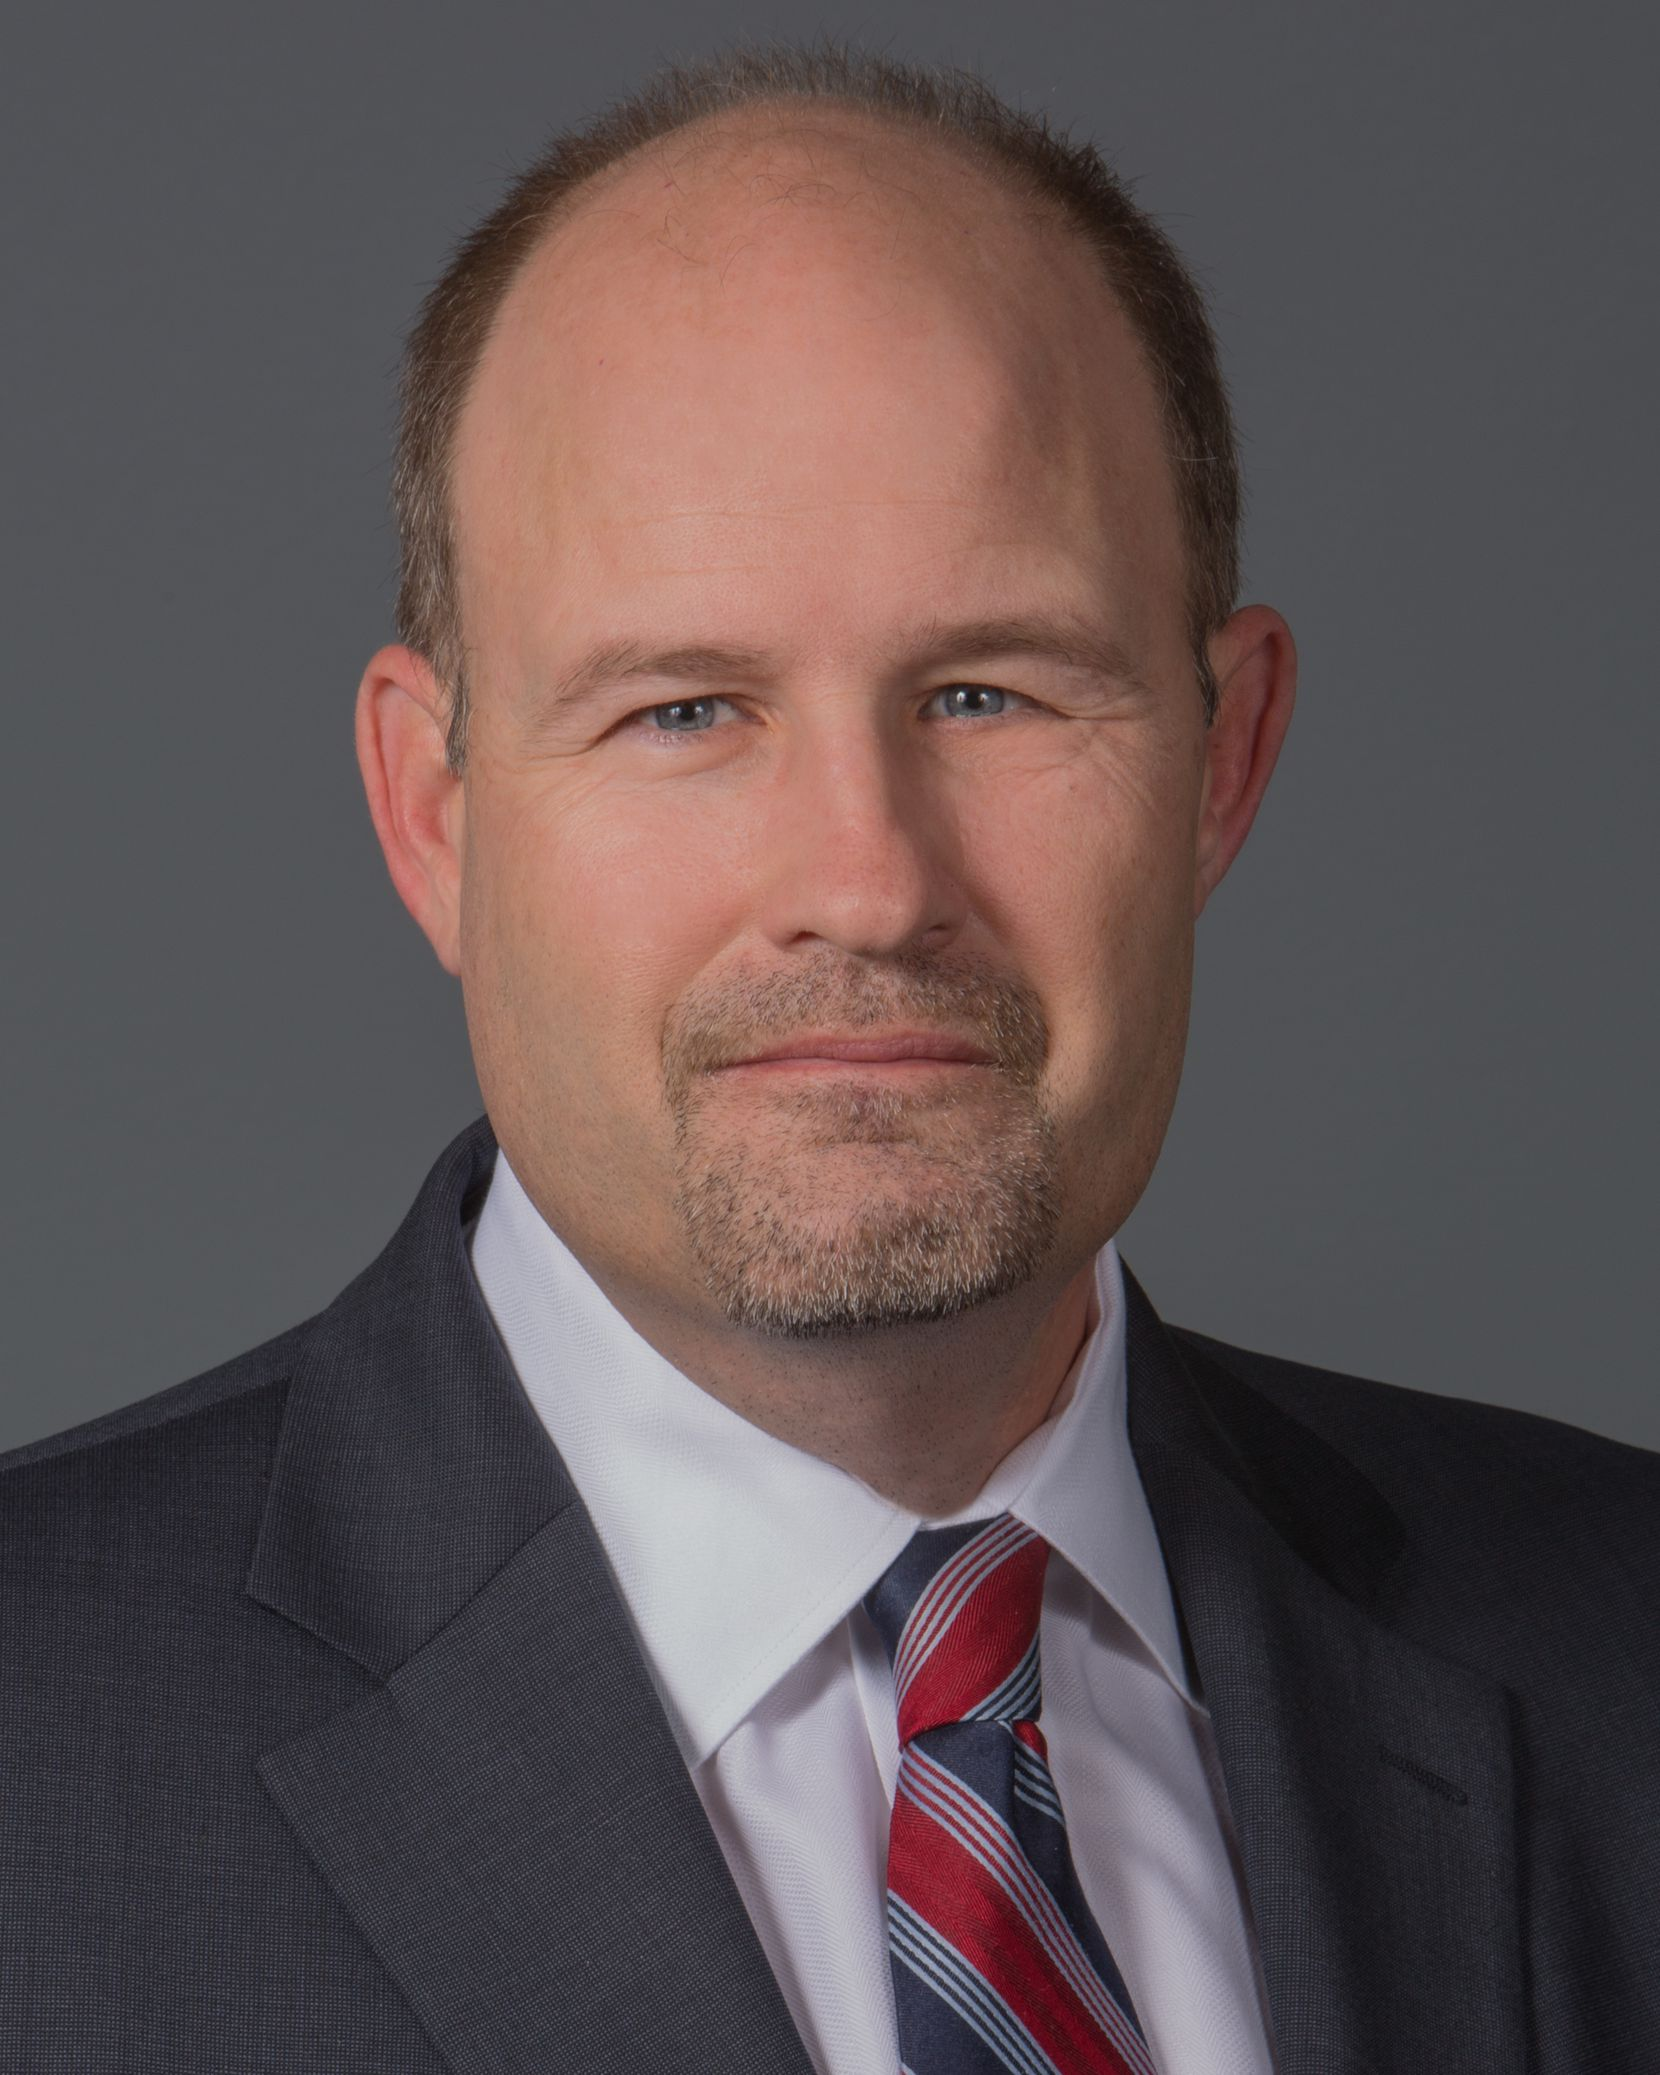 Temporary state social services czar Phil Wilson, on leave from his job as general manager of the Lower Colorado River Authority, is a former Texas secretary of state and executive director of the Texas Department of Transportation.